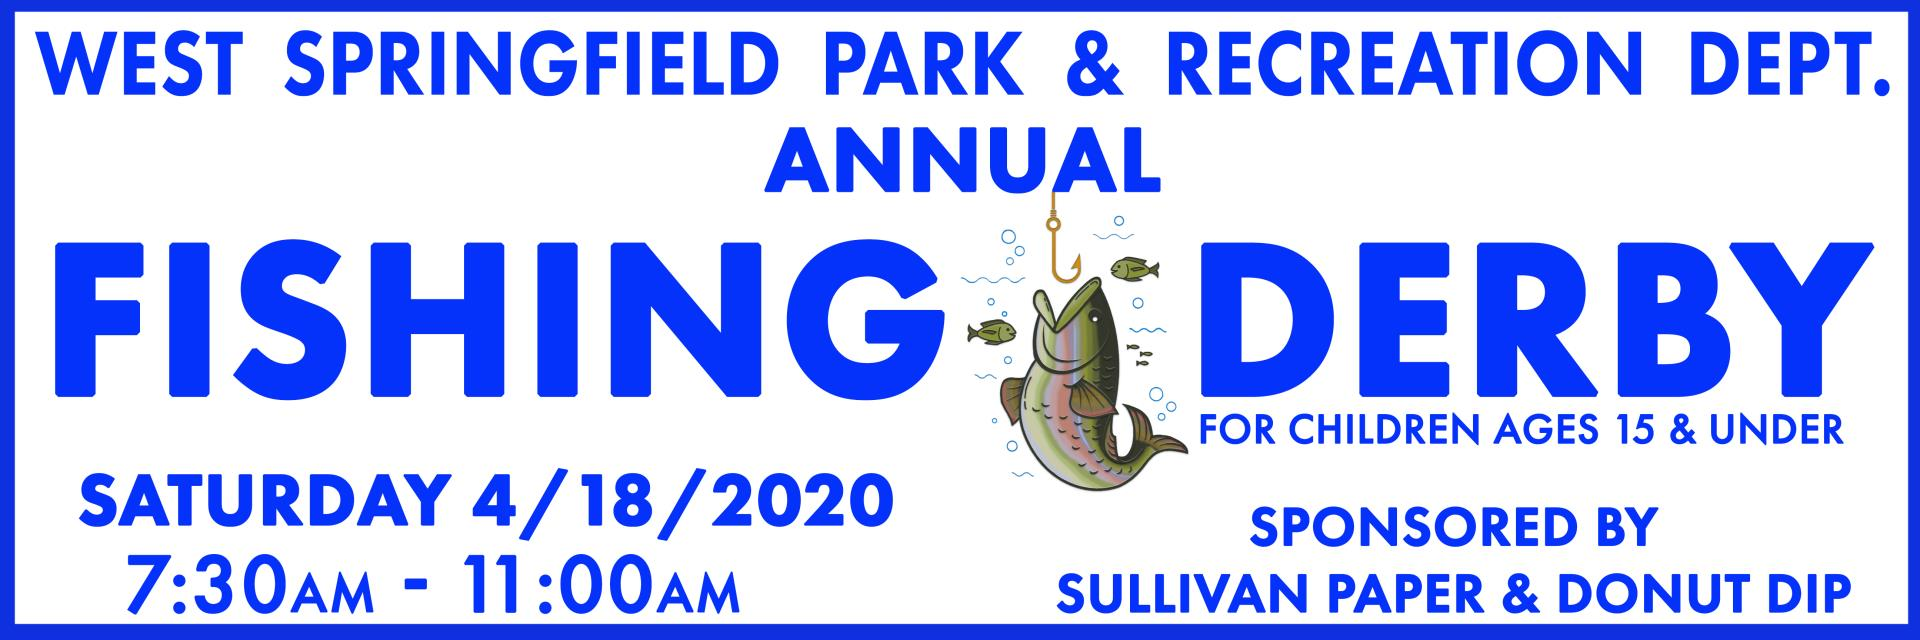 Fishing Derby Banner 2020